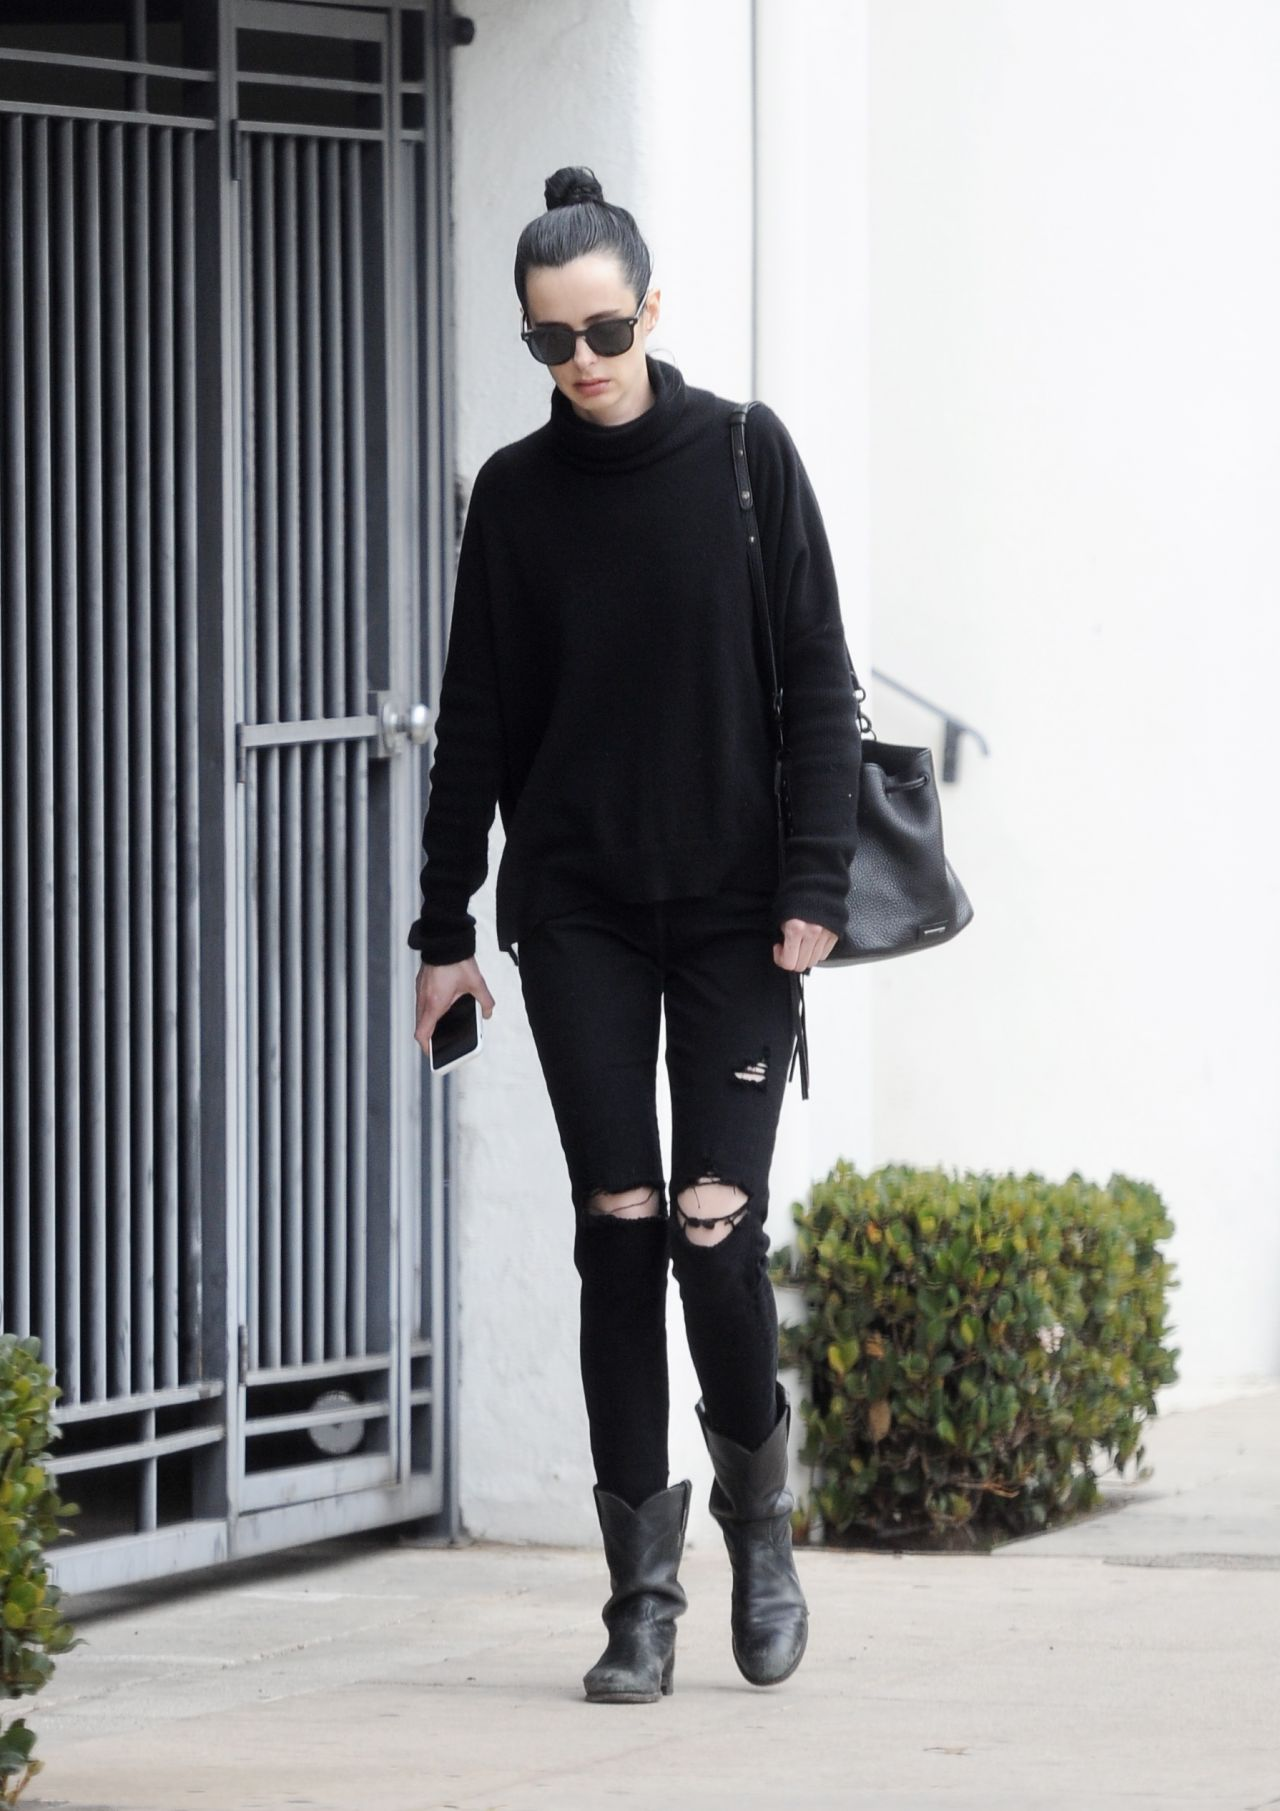 Krysten Ritter in Casual Attire - Leaves a Medical Building in Beverly Hills